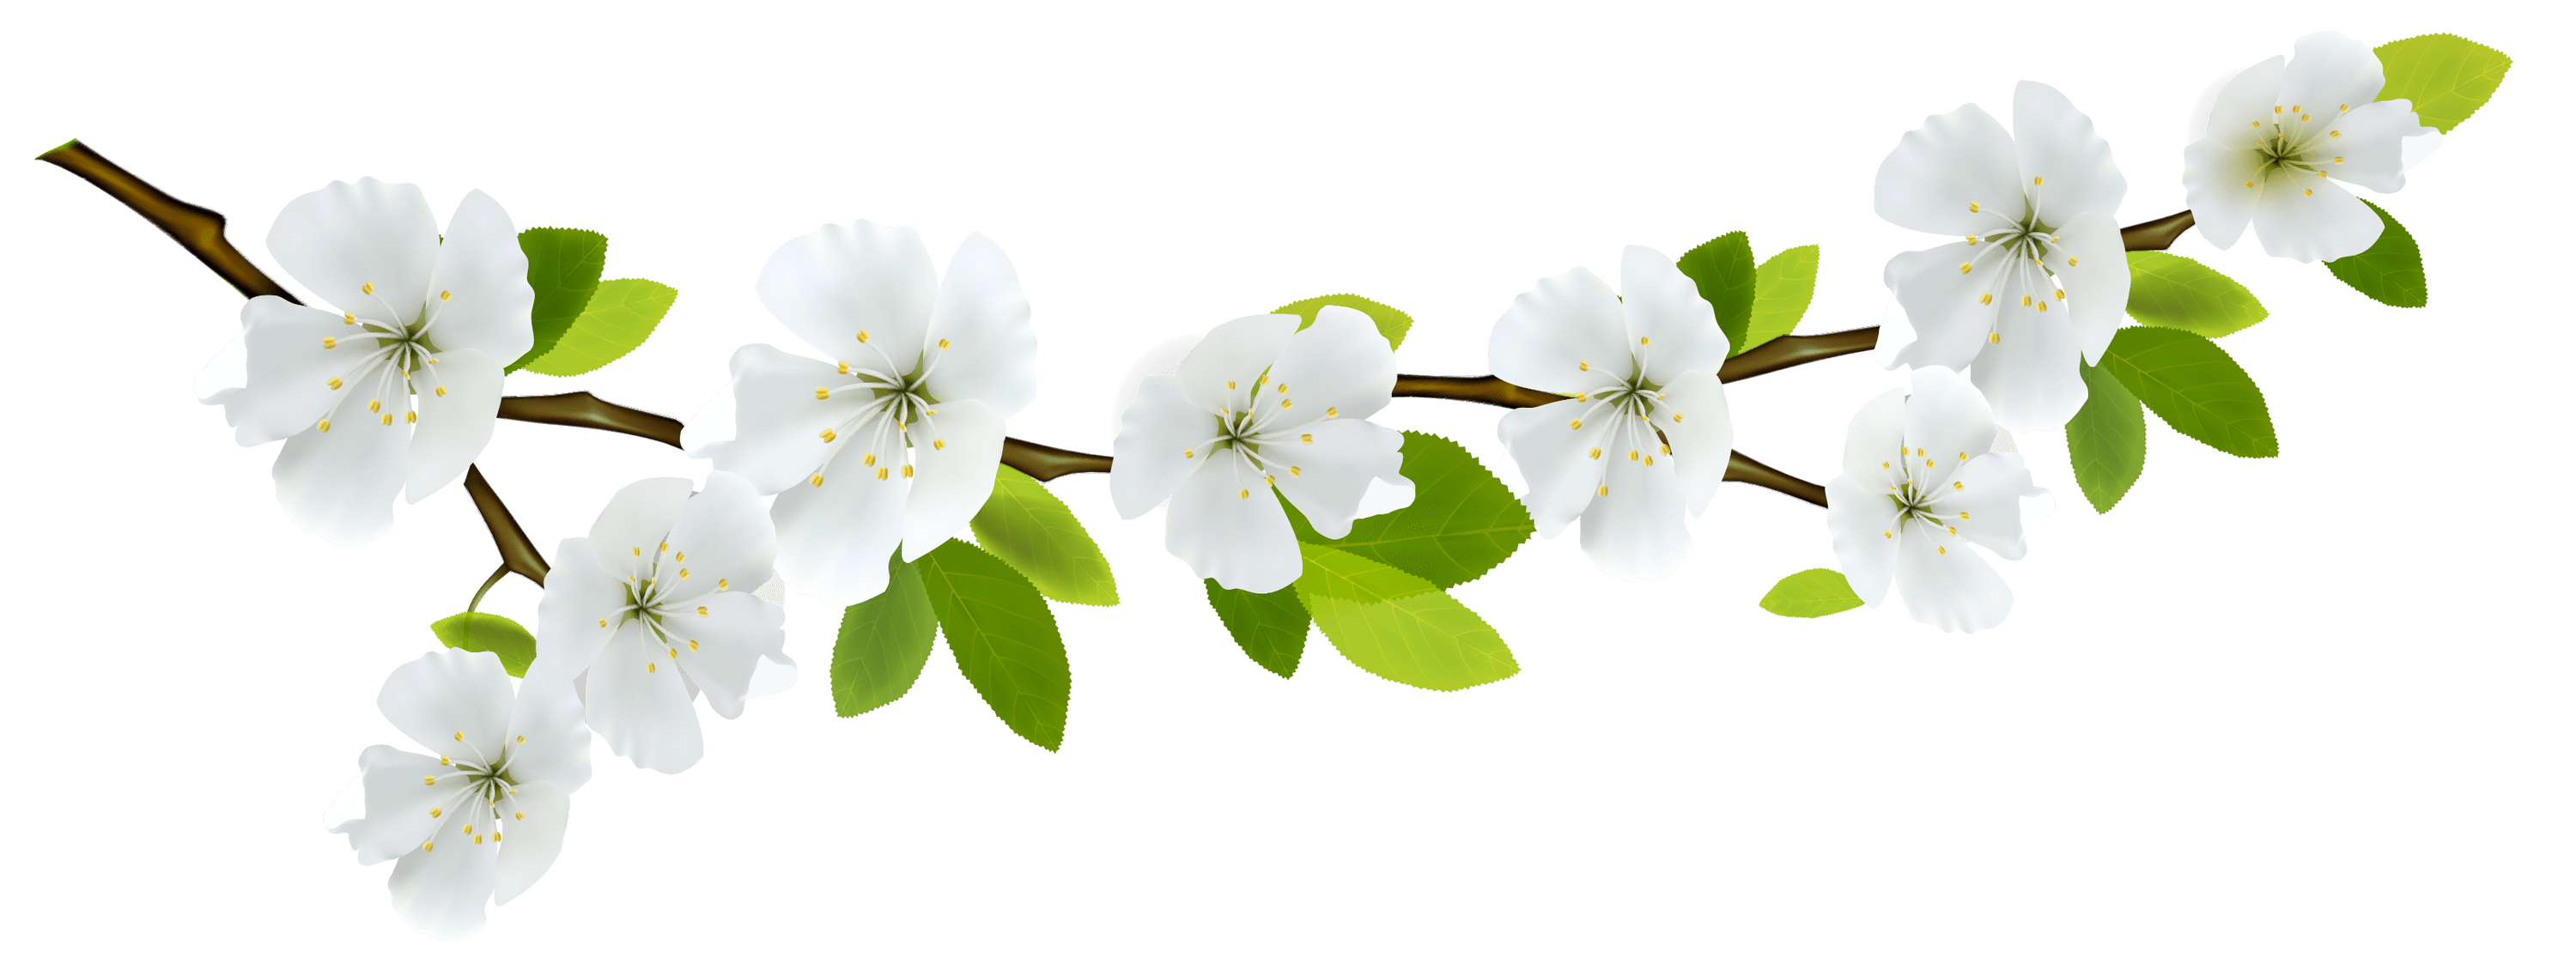 Download spring free png. Stick clipart branch